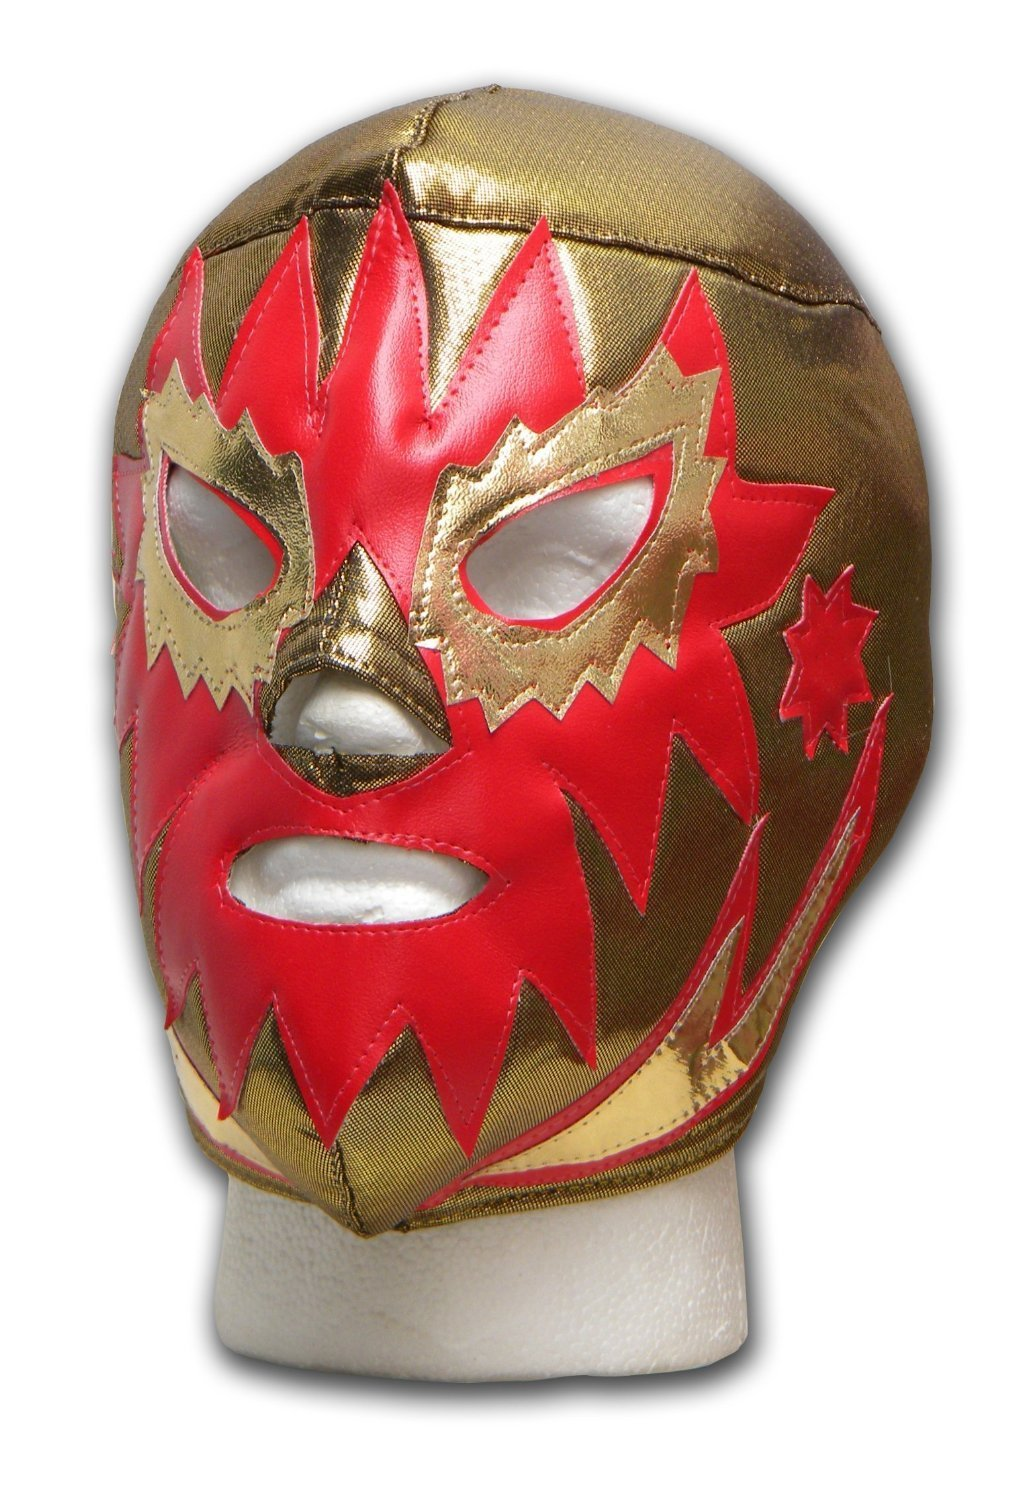 WRESTLING MASKS UK Men's Solar Oro - - Tie Up Wrestling Mask One Size Multicoloured by Wrestling